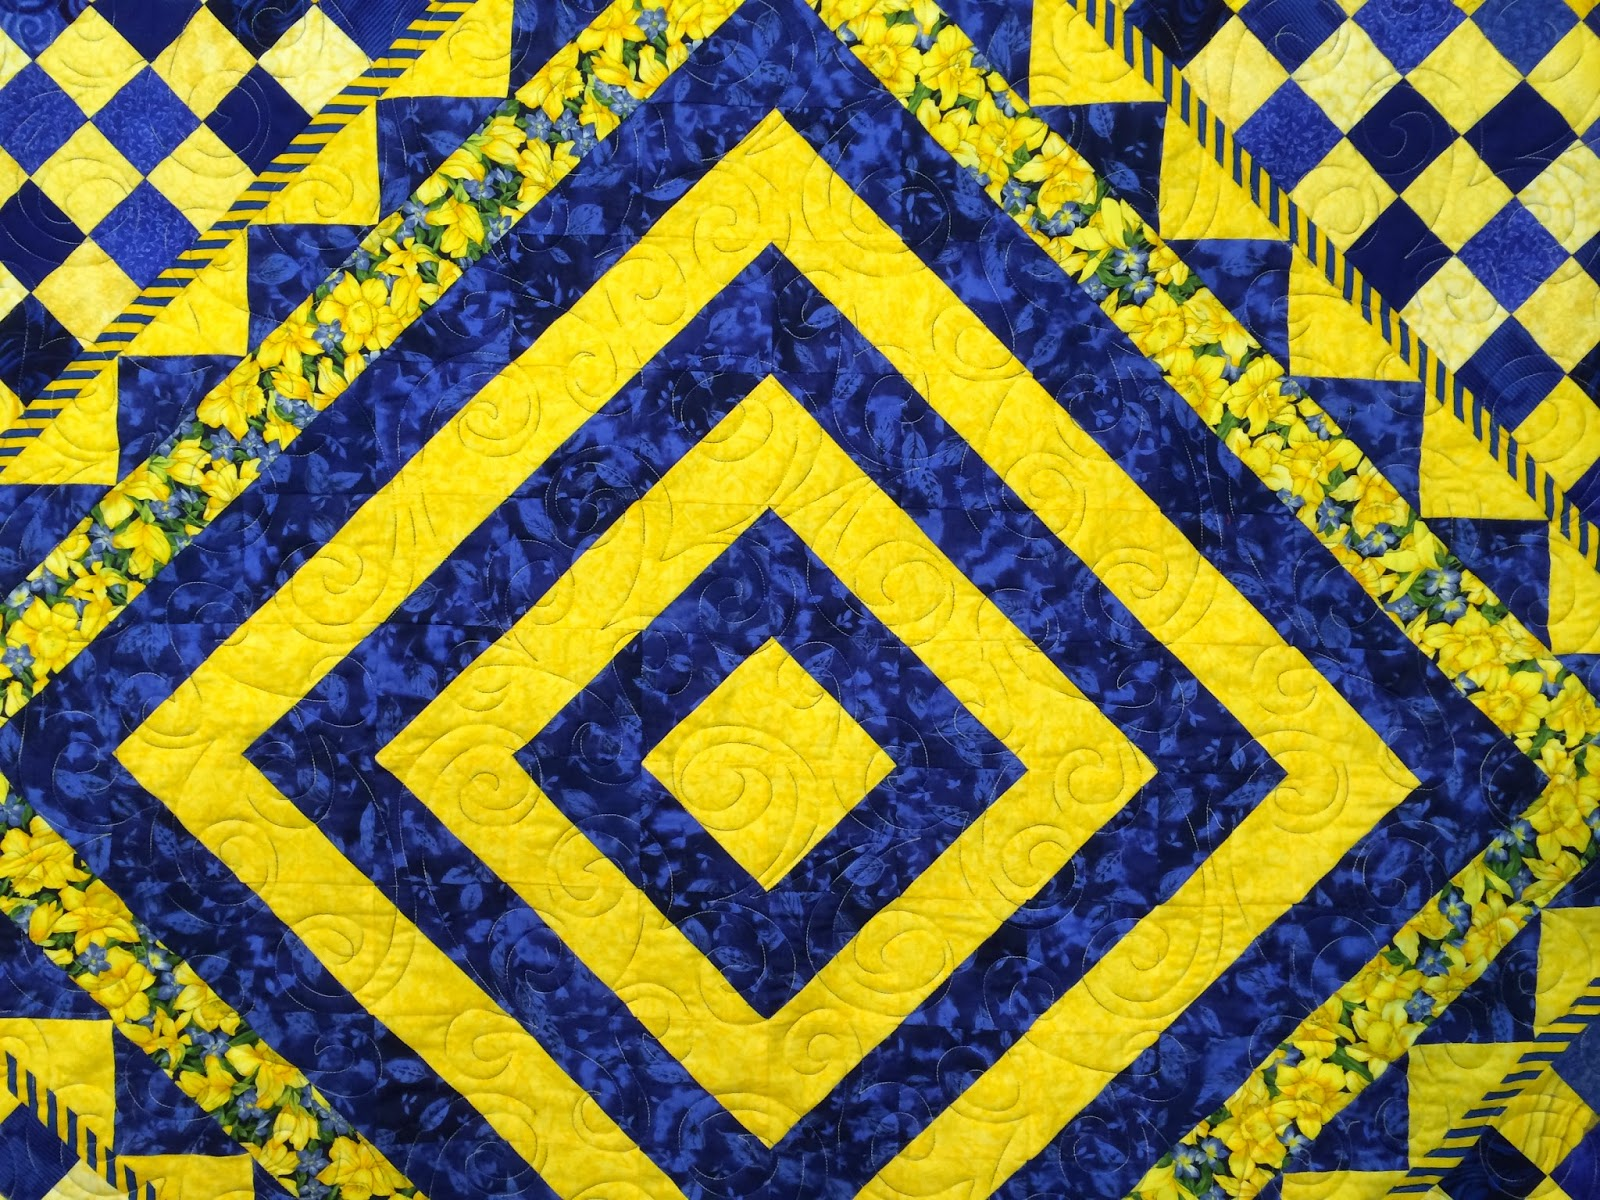 Peggy Krebs's Yellow and Blue Quilt